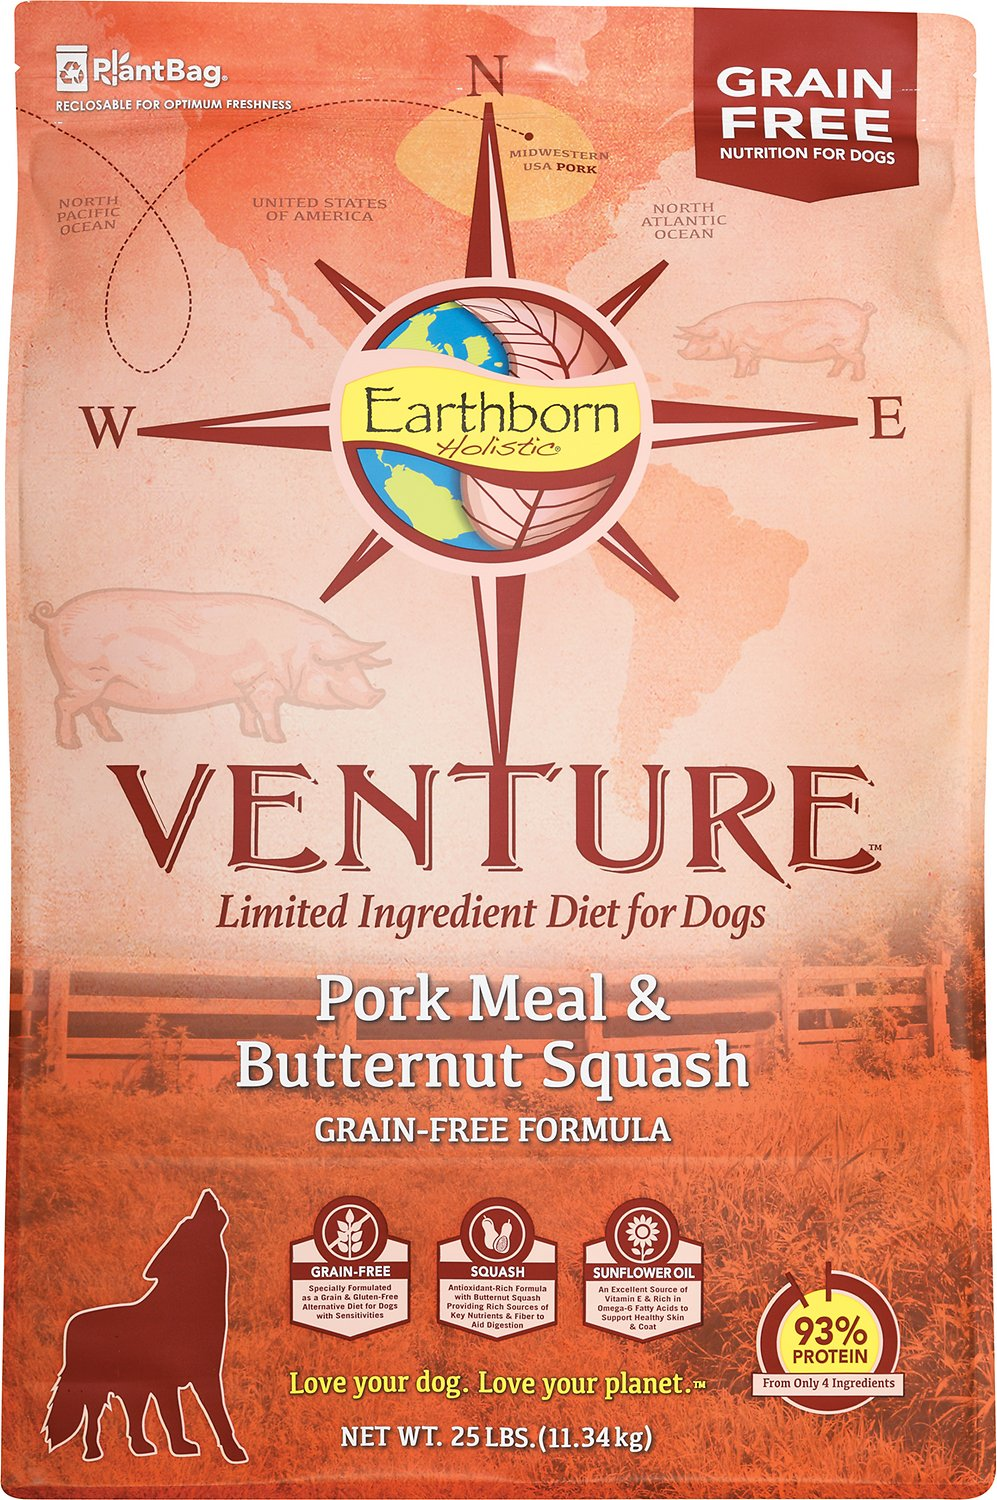 Earthborn Holistic Venture Pork Meal & Butternut Squash Limited Ingredient Diet Grain-Free Dry Dog Food Image